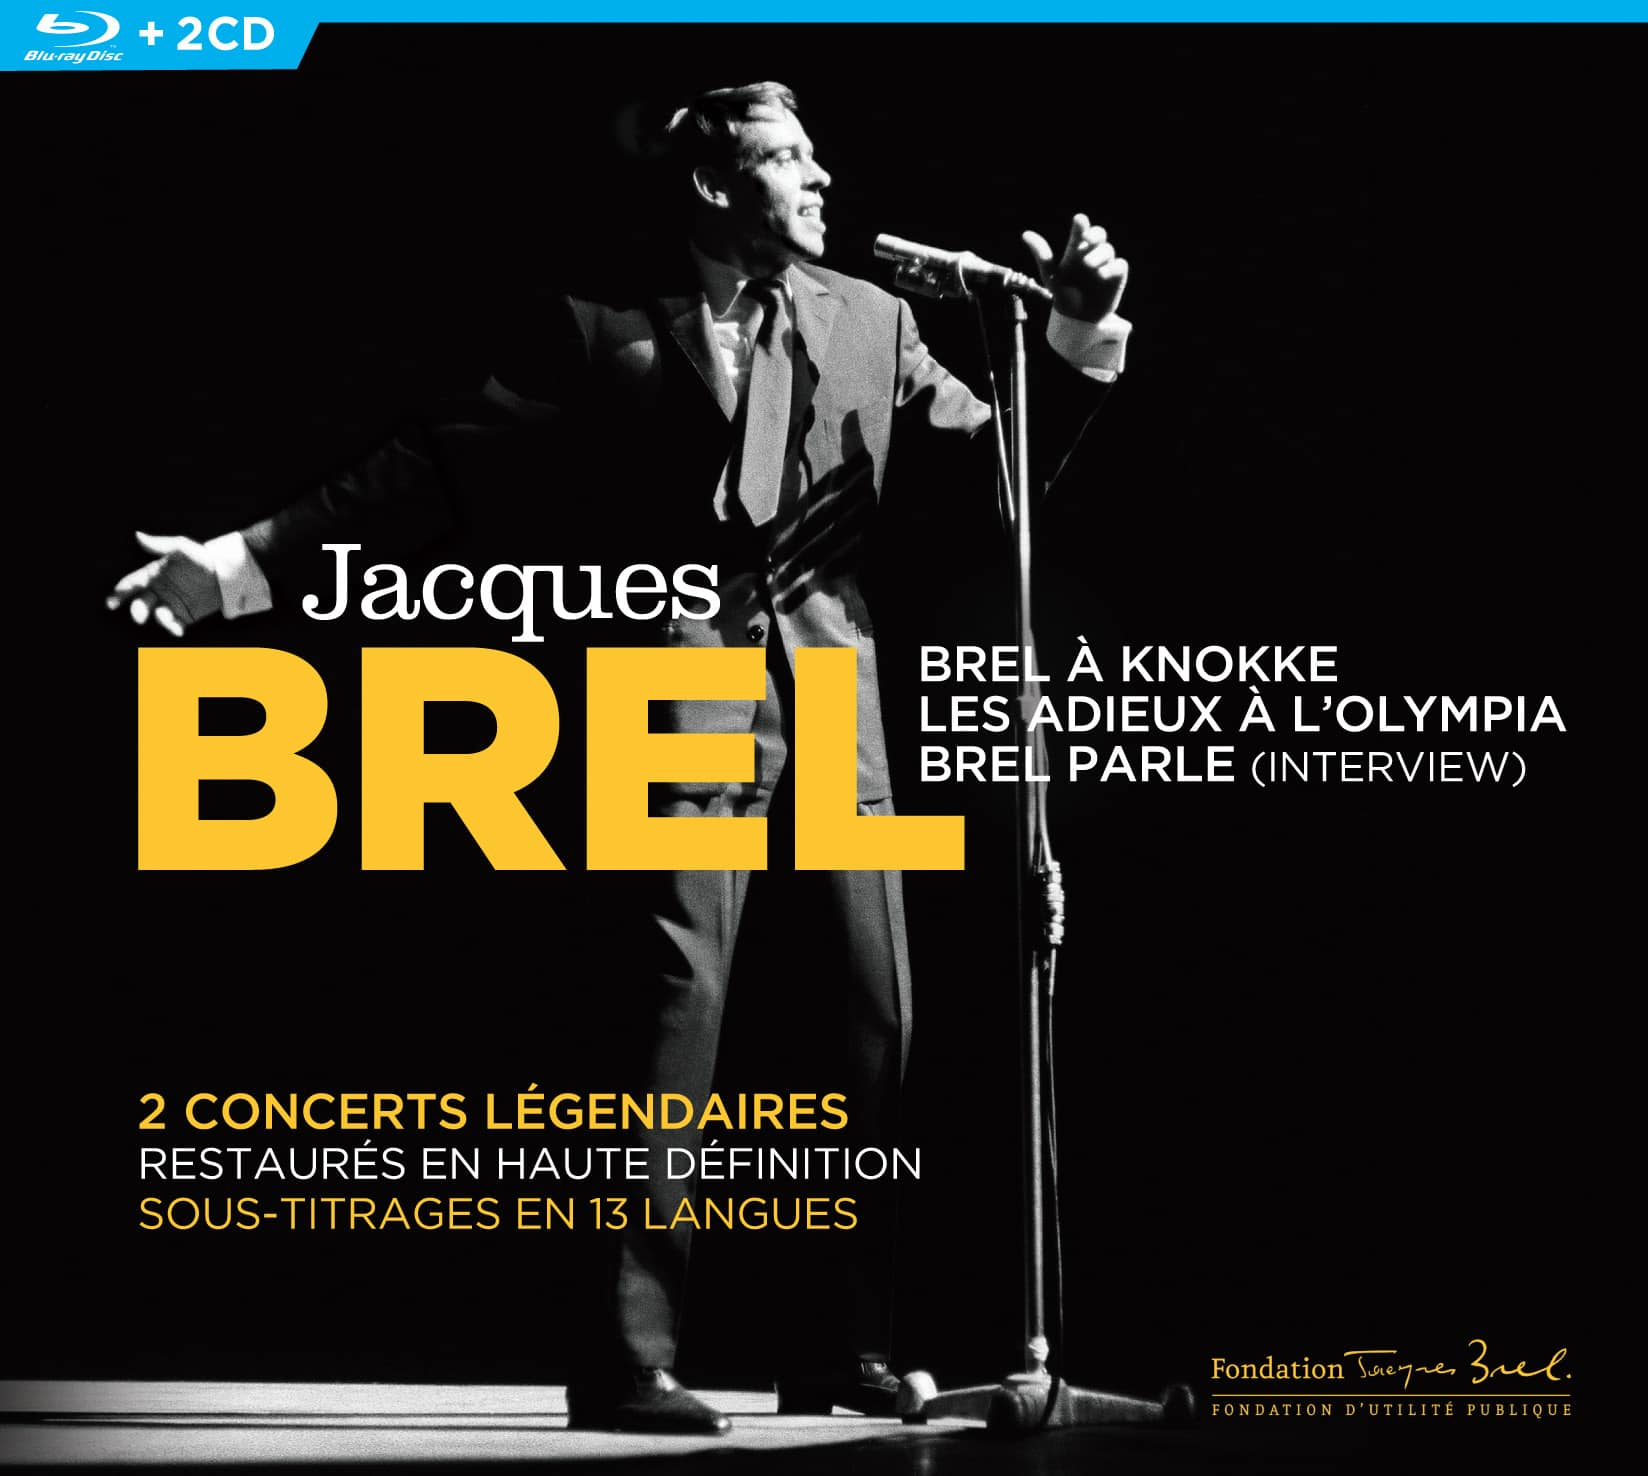 Brel en concerts et en interview Blu-Ray